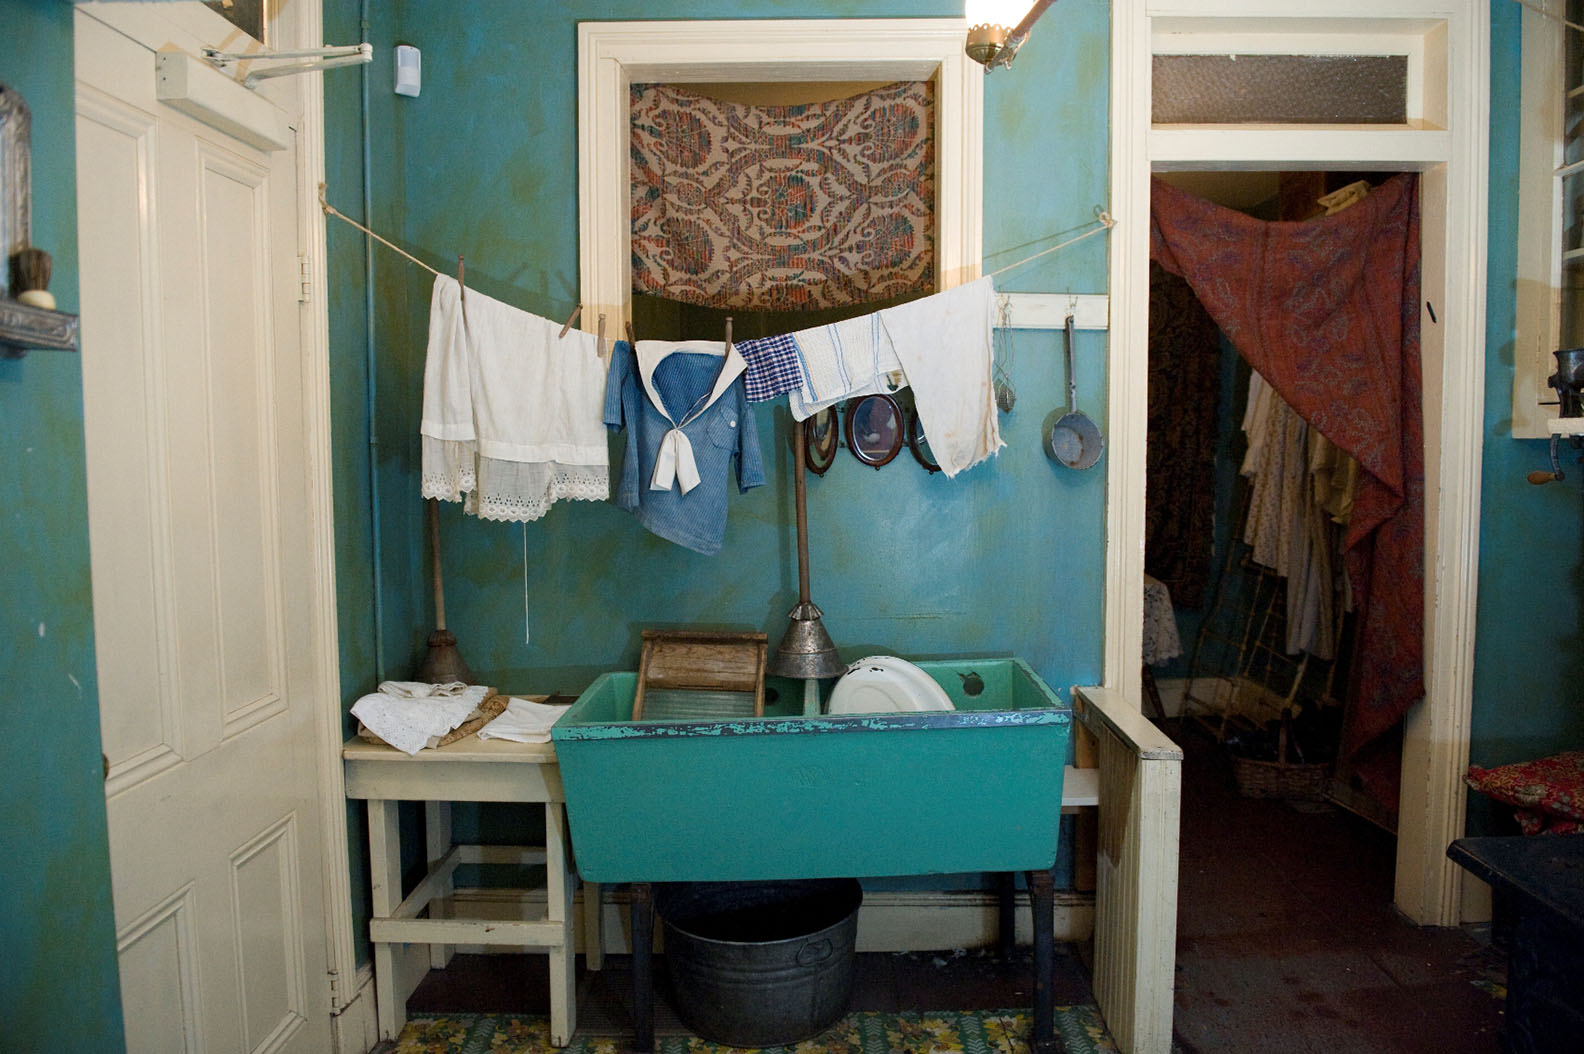 Cloths line hanging over a mounted tub inside the recreated Confino family kitchen